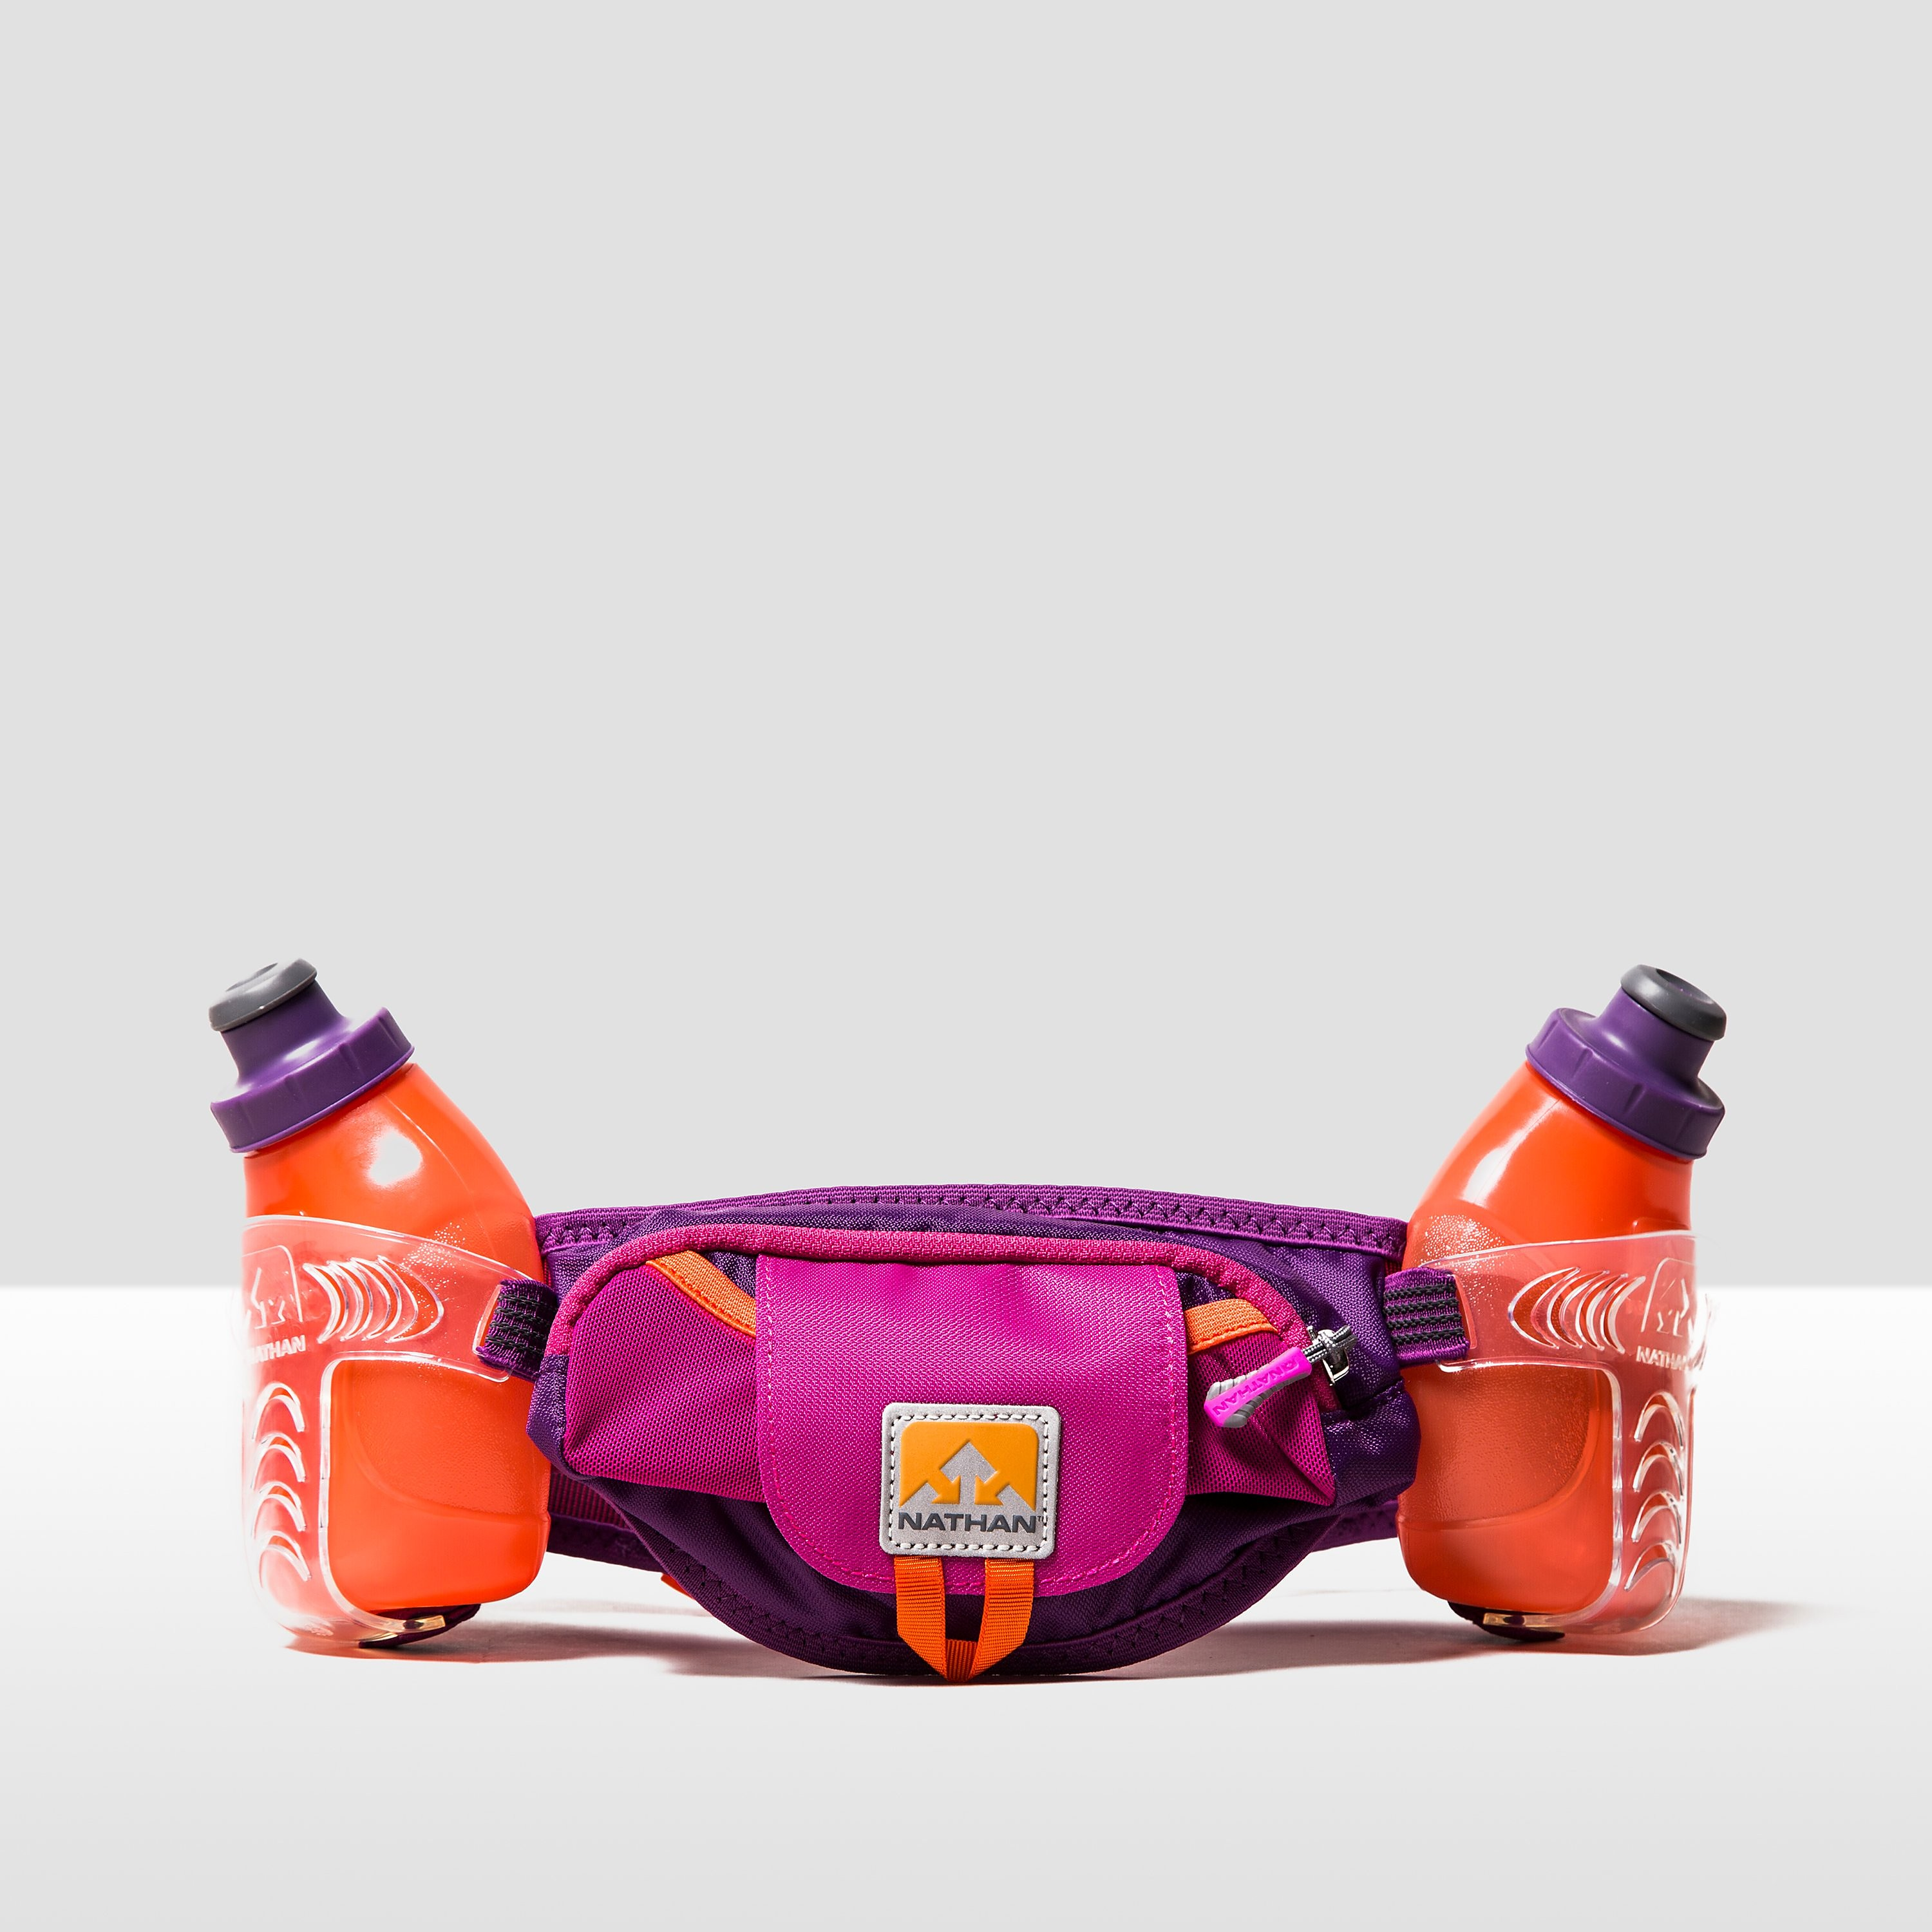 Nathan TrailMix Plus 2 Hydration Belt